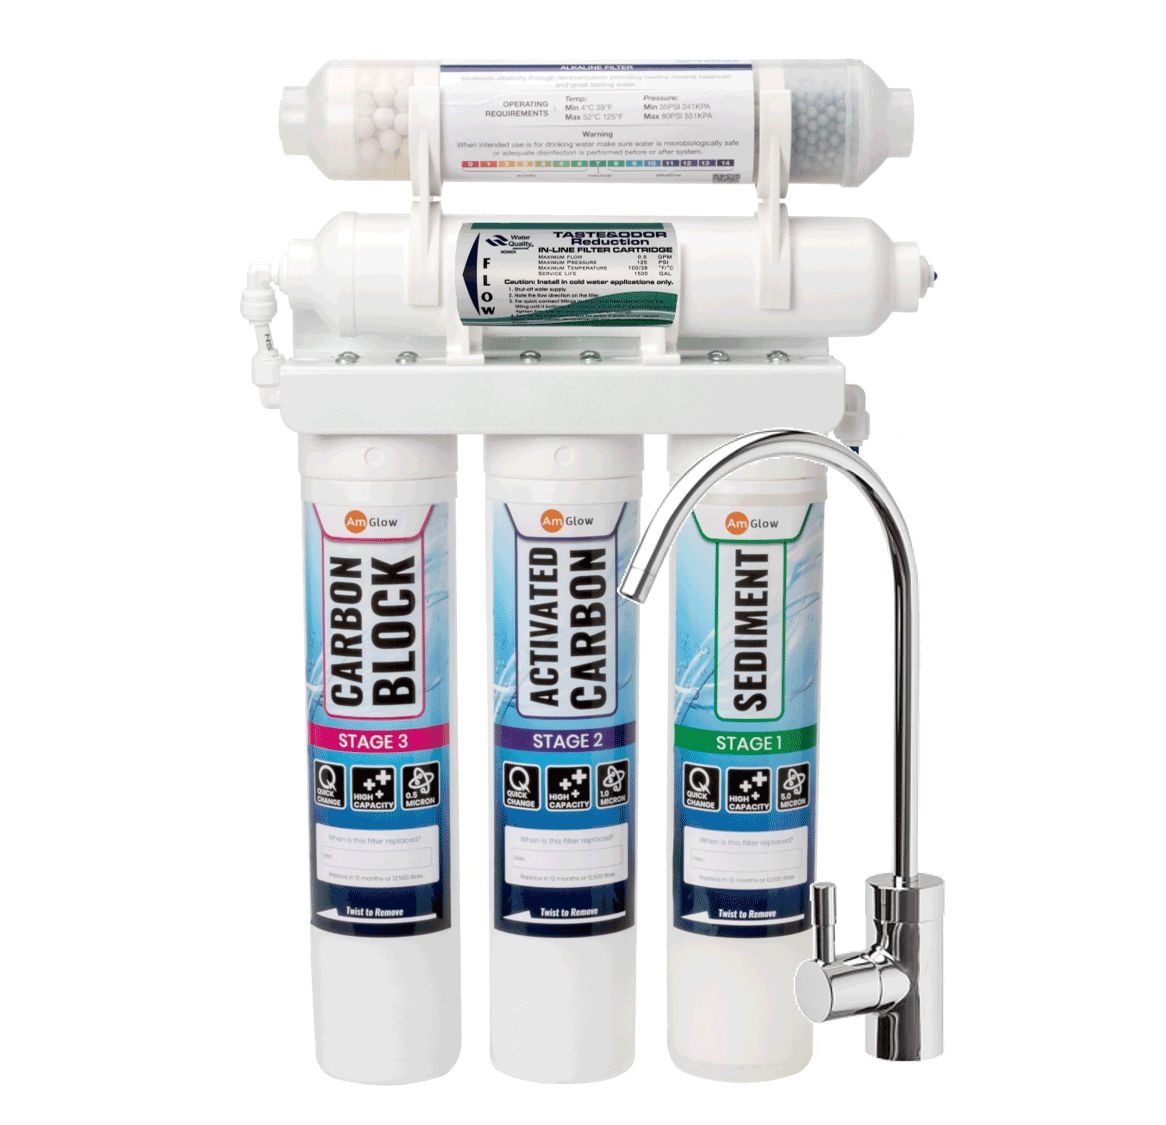 5-Stage Undersink Water Filter System